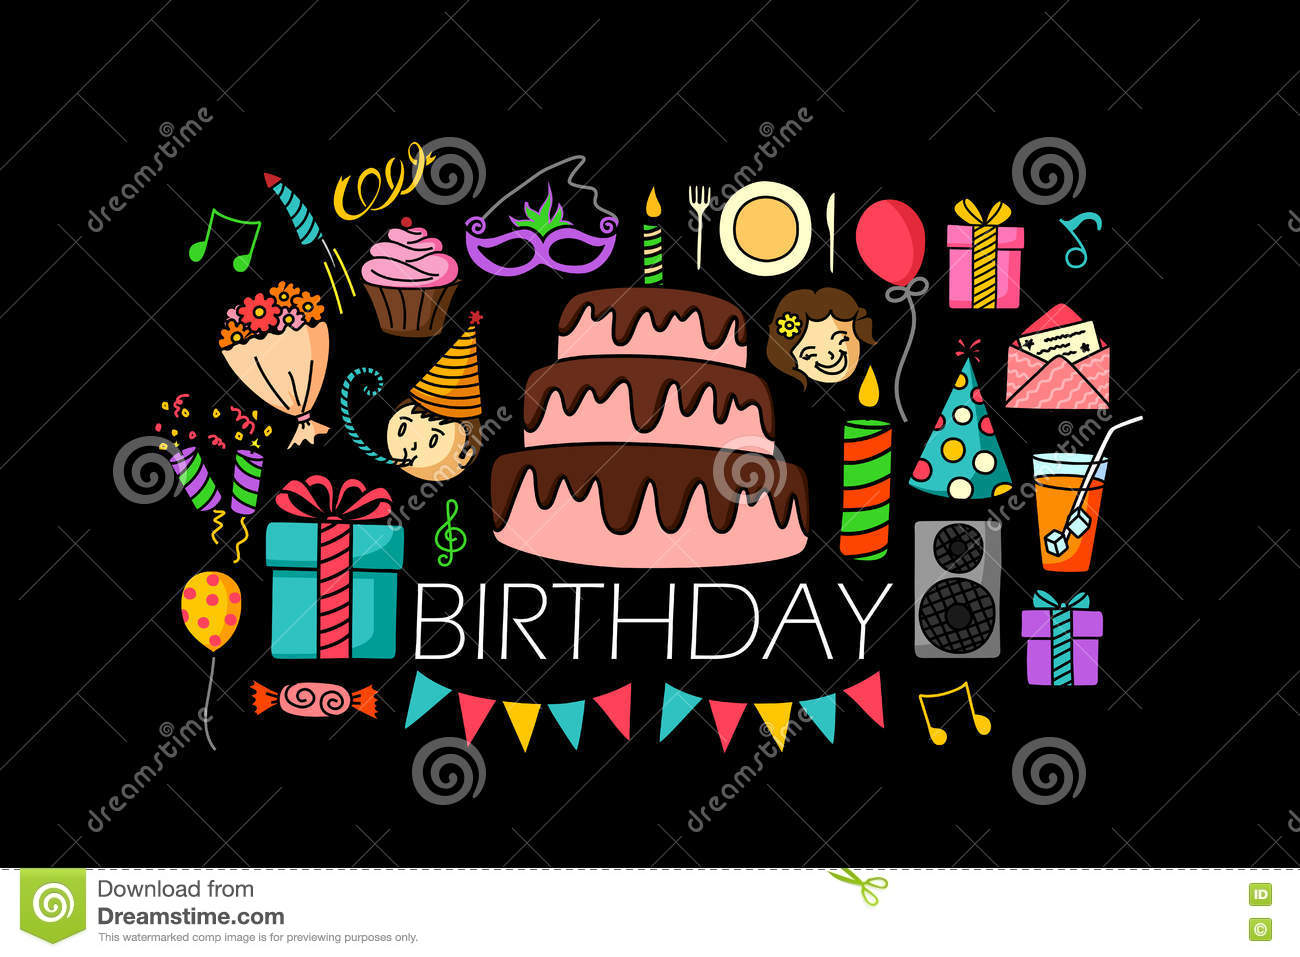 happy birthday website design ; happy-birthday-concept-web-design-template-vector-illustration-flat-line-art-71270644